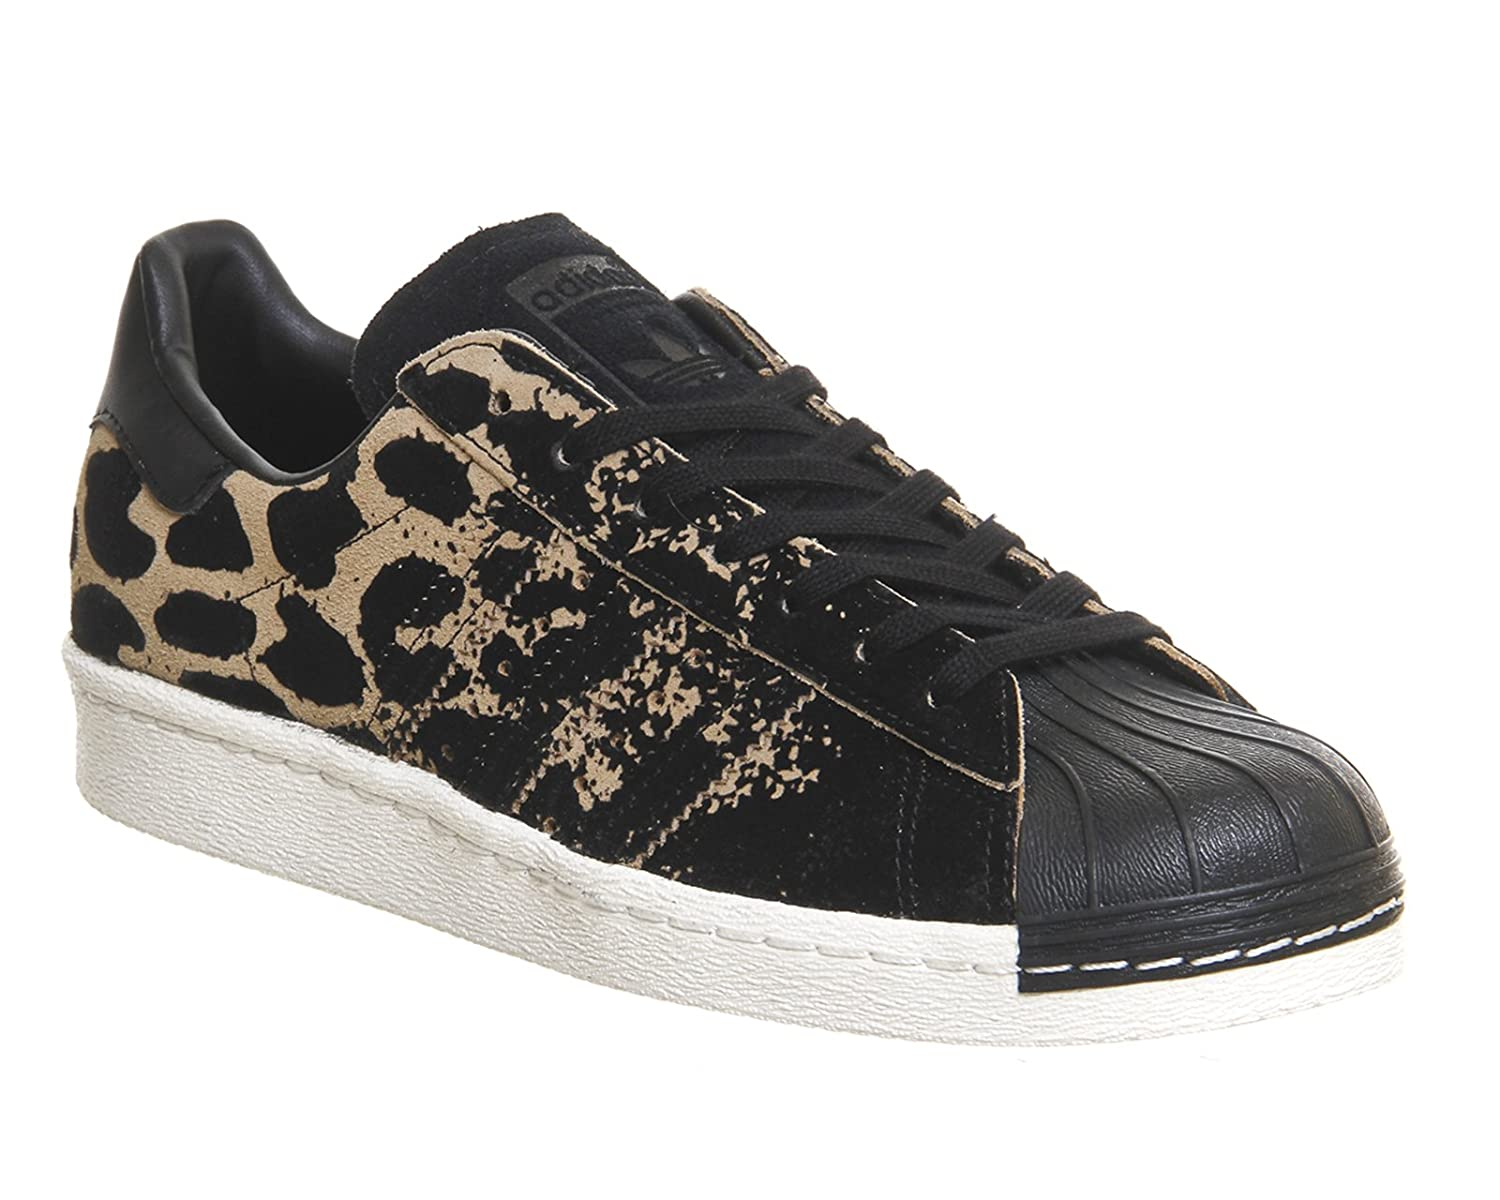 adidas Originals SUPERSTAR 80s W Chaussures Mode Sneakers Femme Noir Motif Leopard